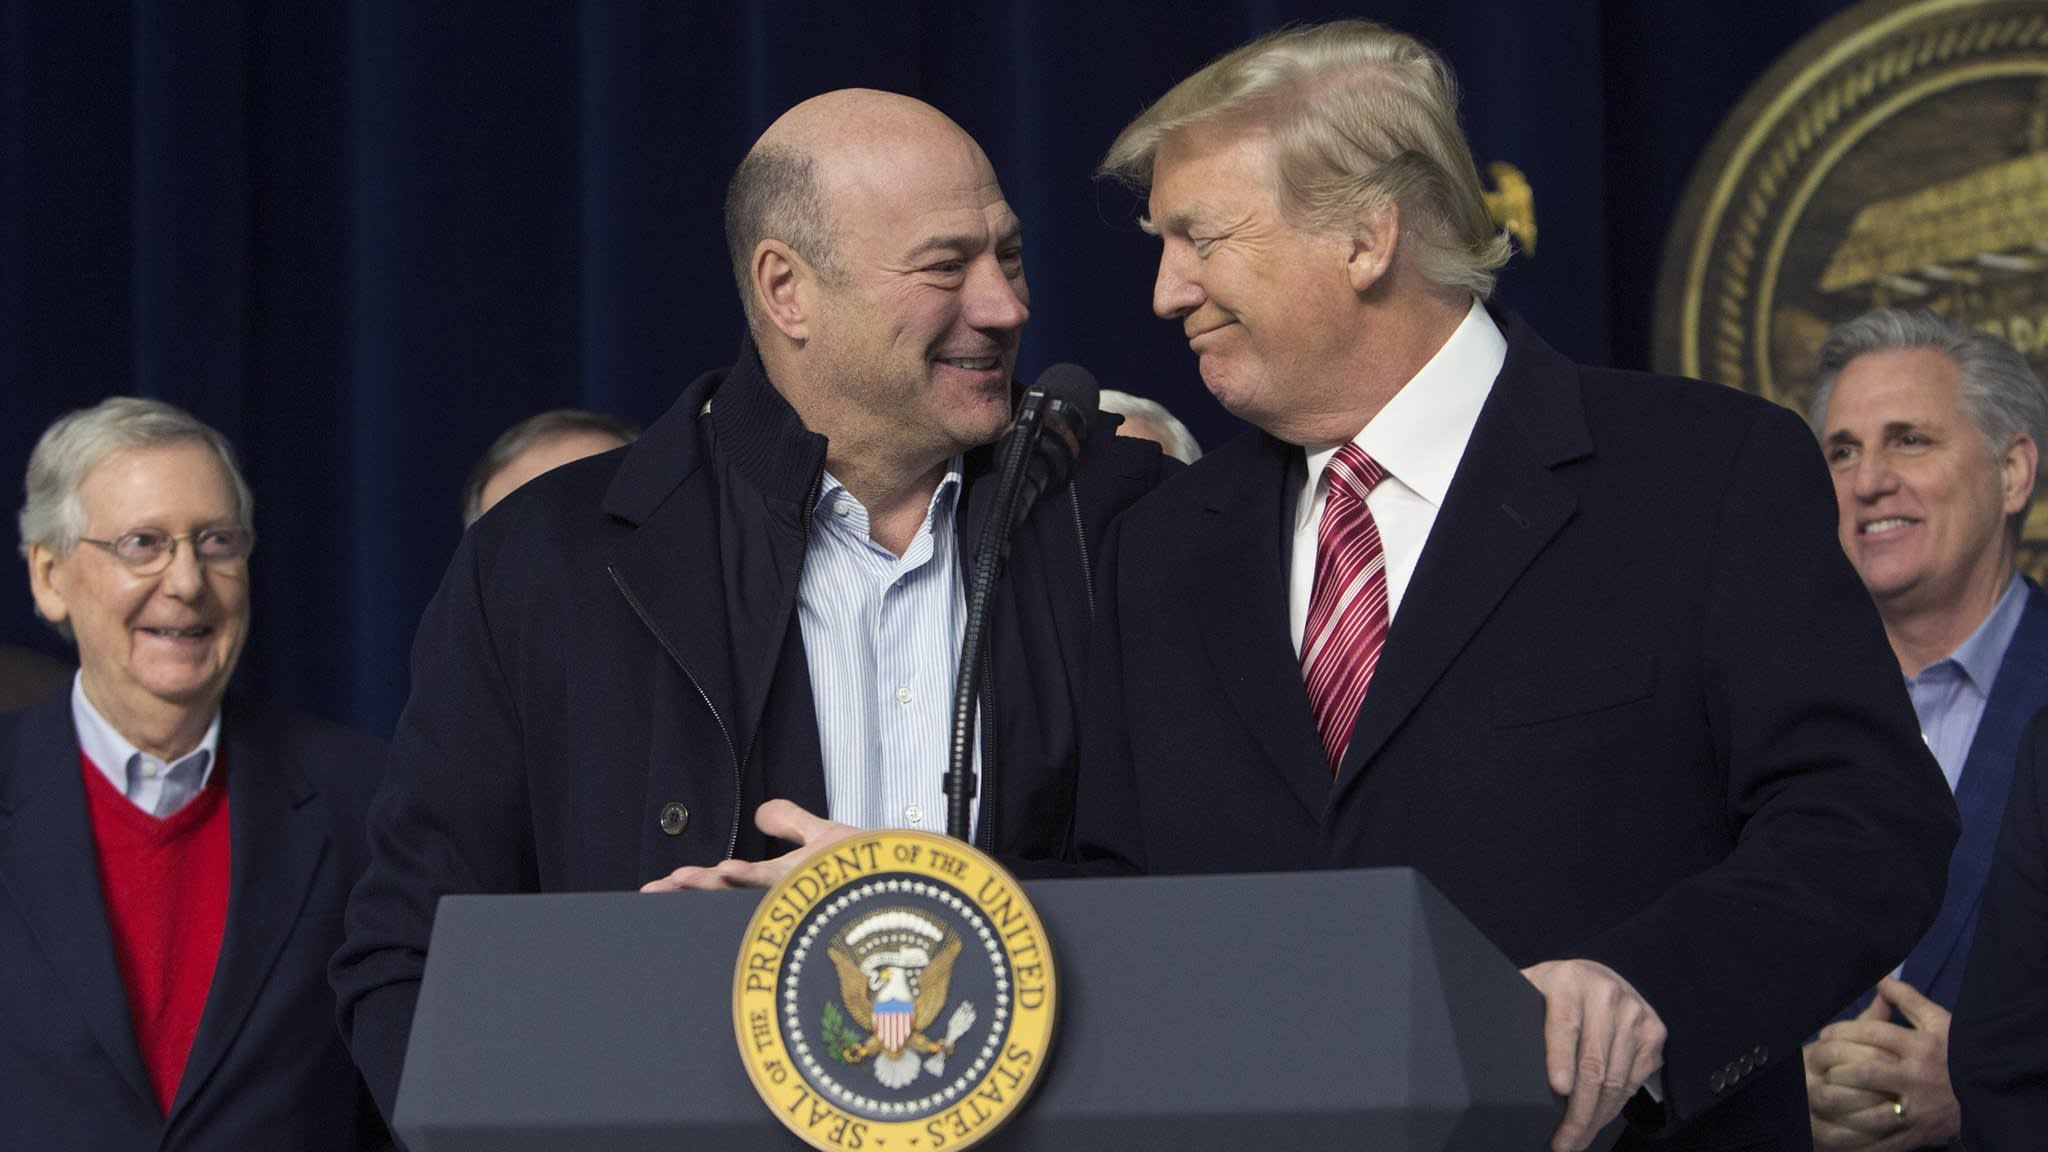 Gary Cohn's exit prompts alarm among business leaders